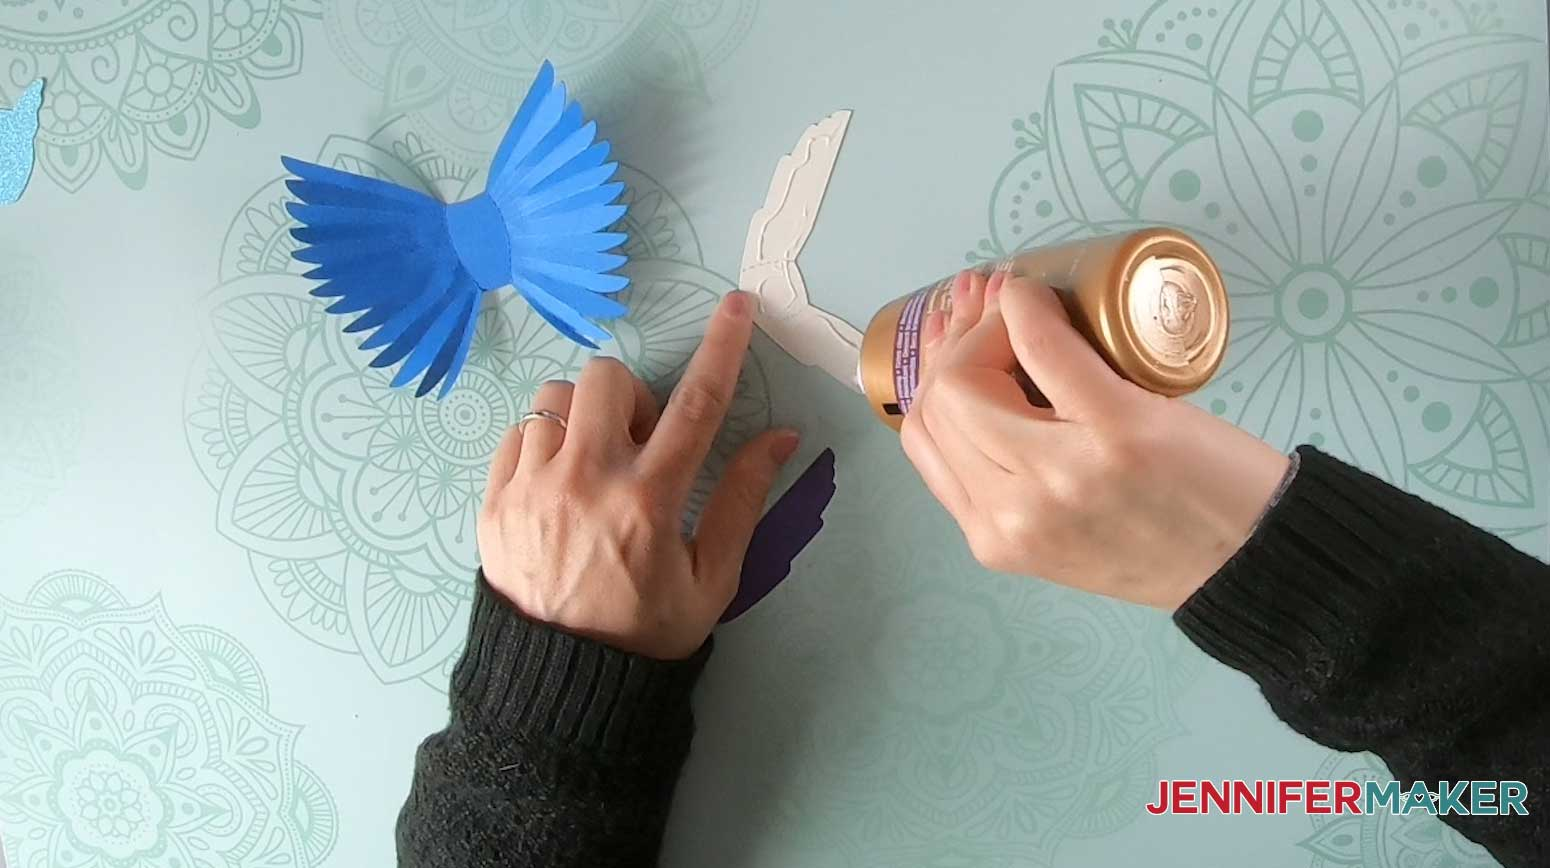 Apply glue to the paper bird decorative accent pieces